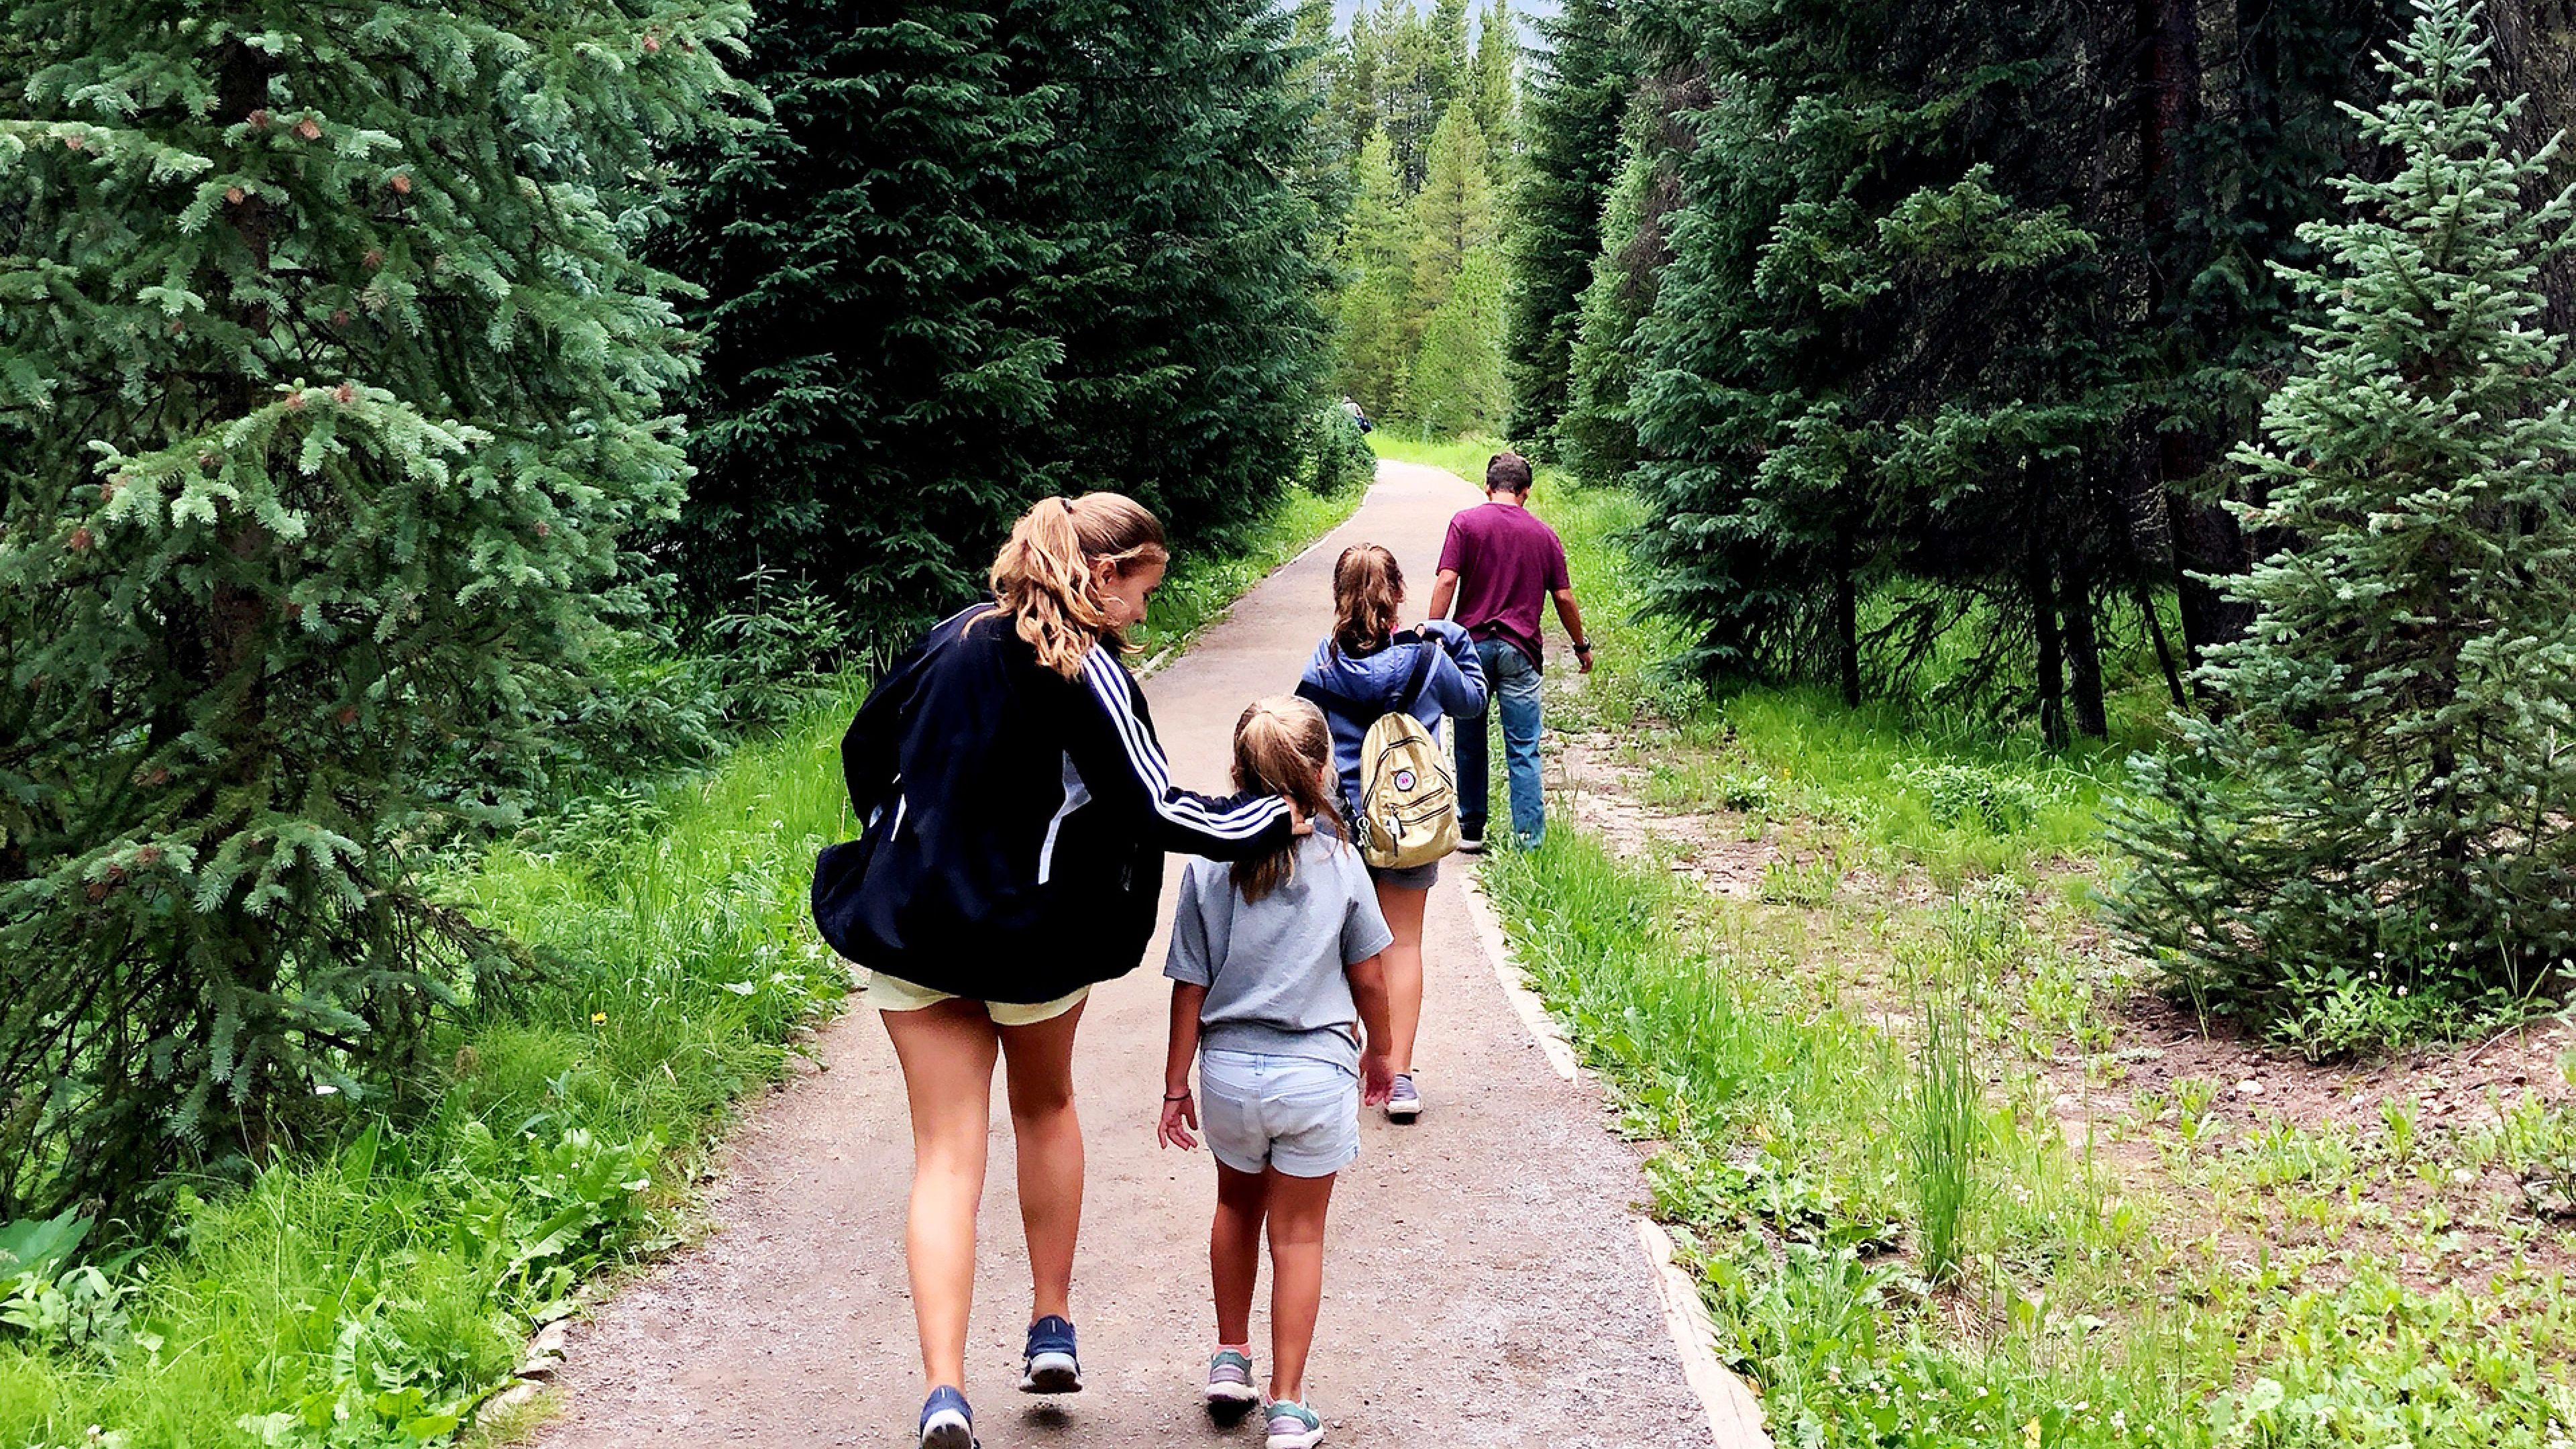 A family walks into the distance on a paved trail path lined with evergreen trees